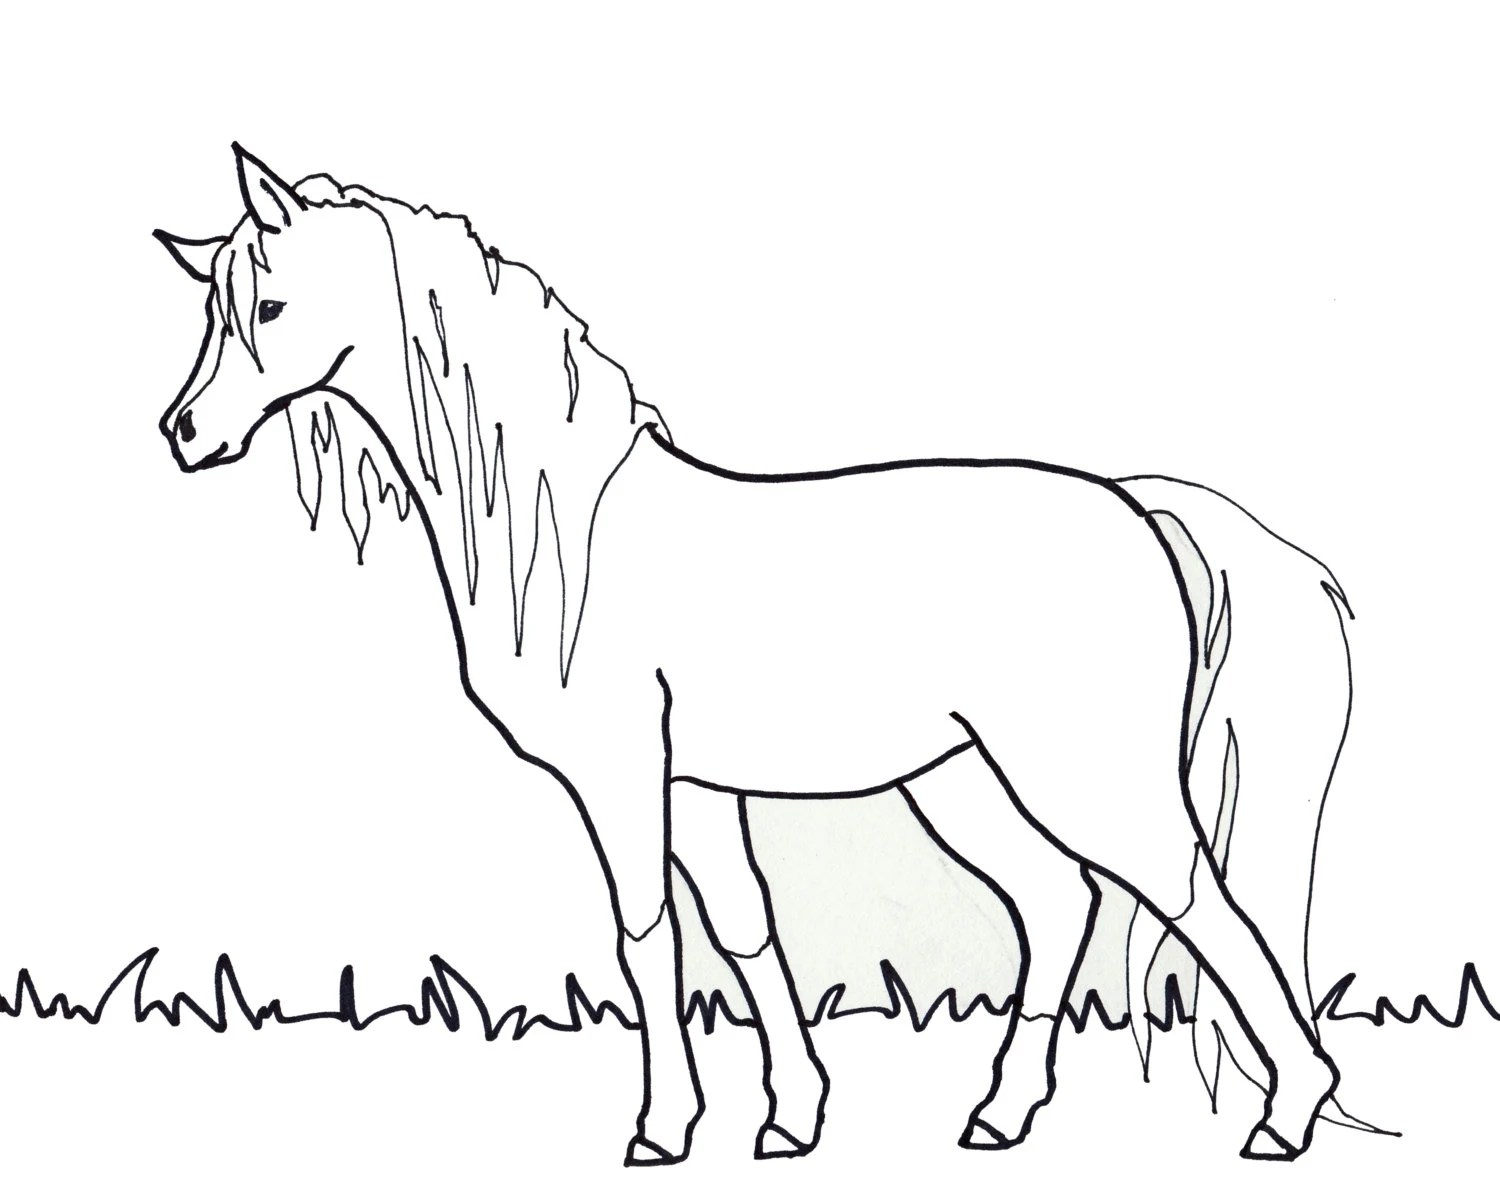 Coloring Page: Horse Adult or Children 8x10 by DrawMonkeyArt